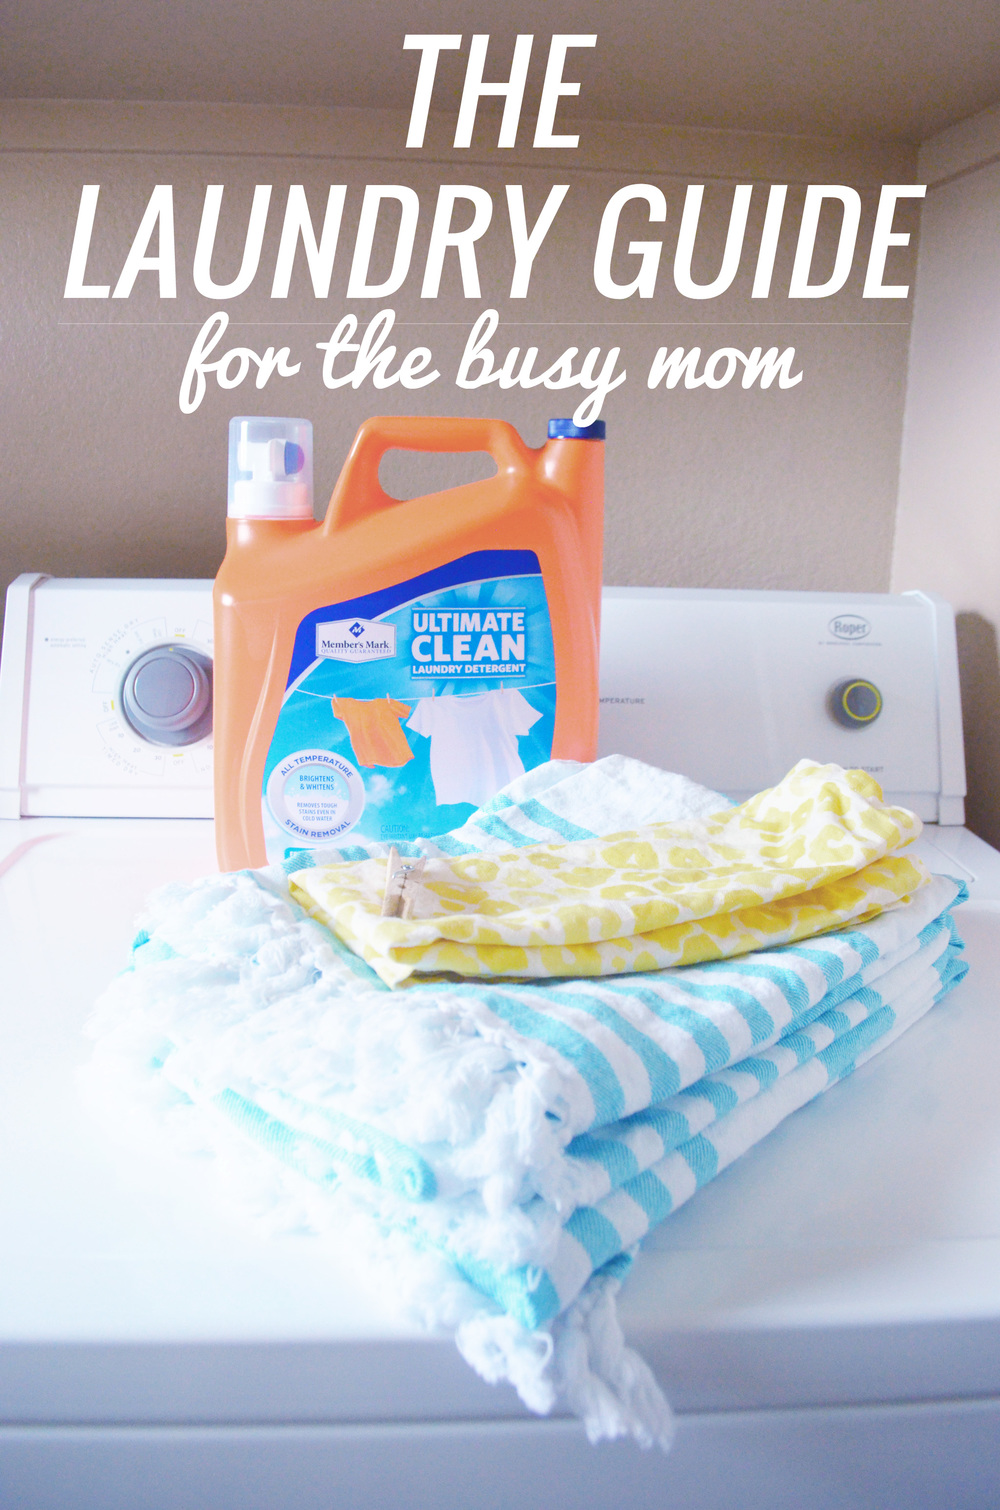 A Simple Laundry Routine for Busy Moms | Momma Society-The Community of Modern Moms | www.MommaSociety.com